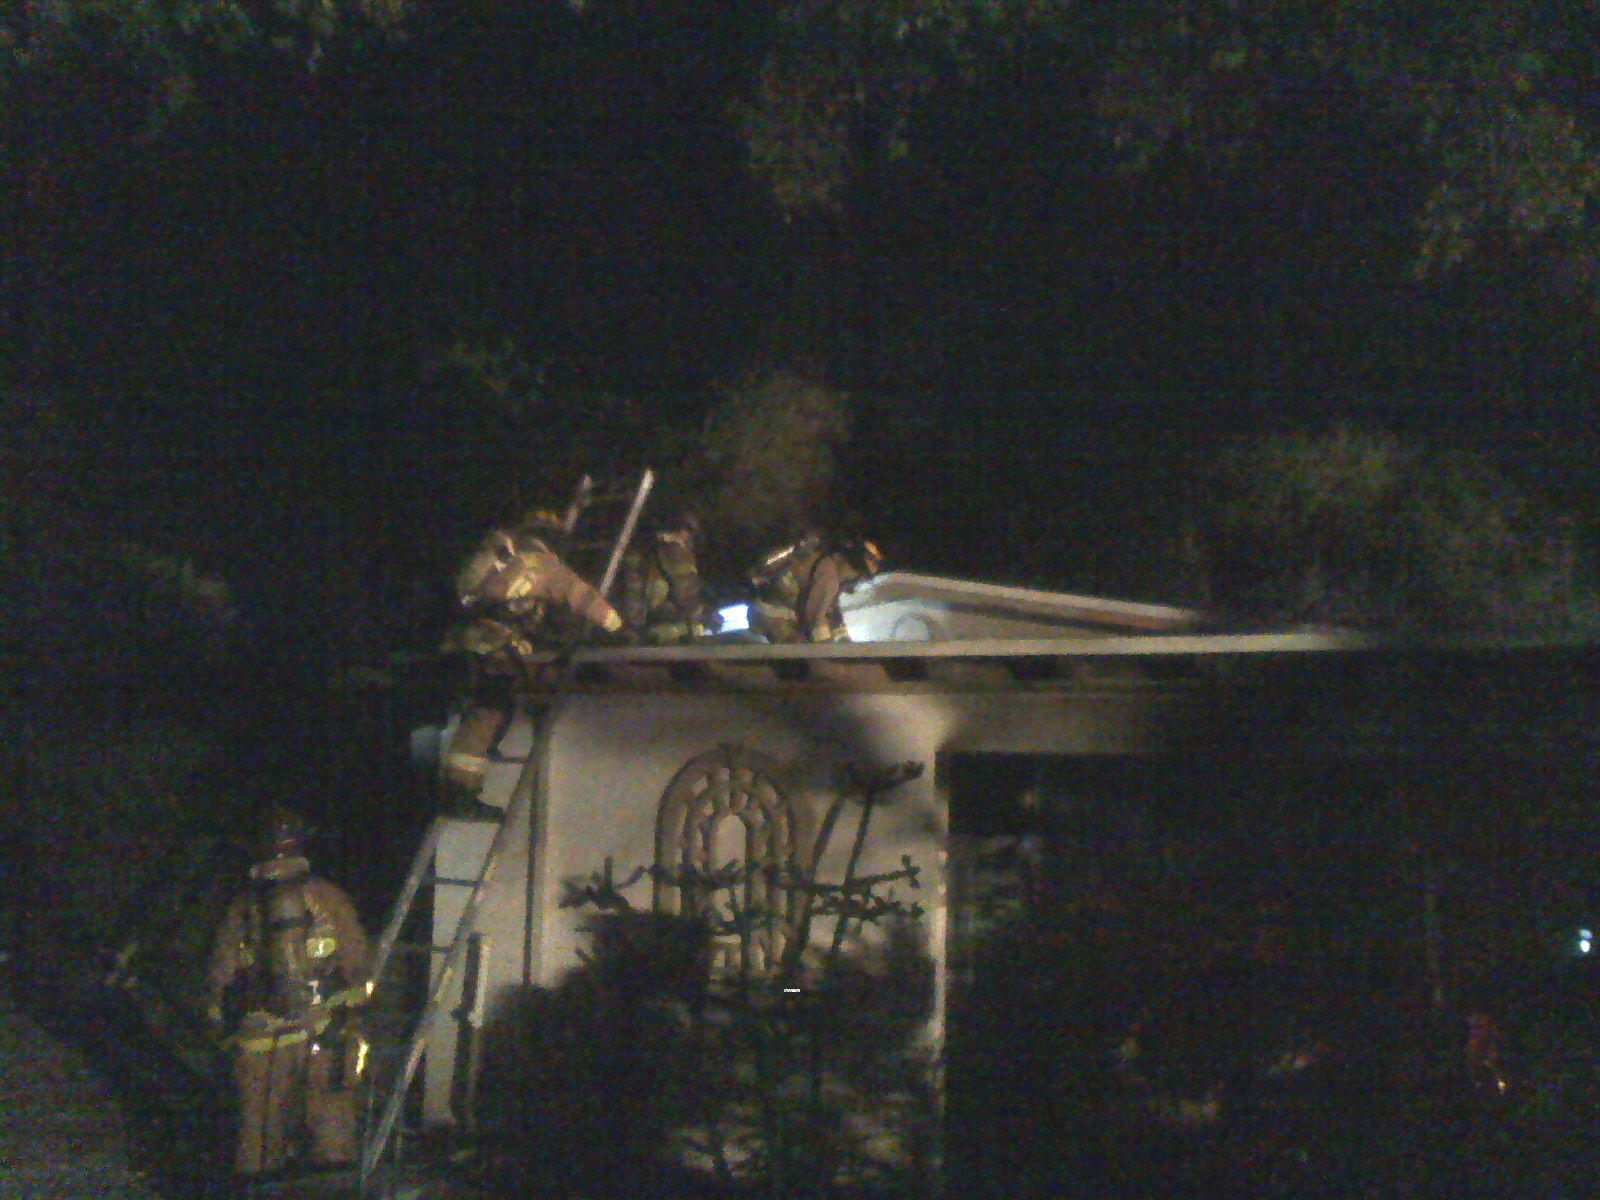 Firefighters from Fort Lauderdale Fire Rescue at the scene of a fire at 1336 SW 18th Ave. that was reported about 3:45 a.m. No injuries were reported. Officials say the squawking of a pet parrot awakened the two sleeping residents.